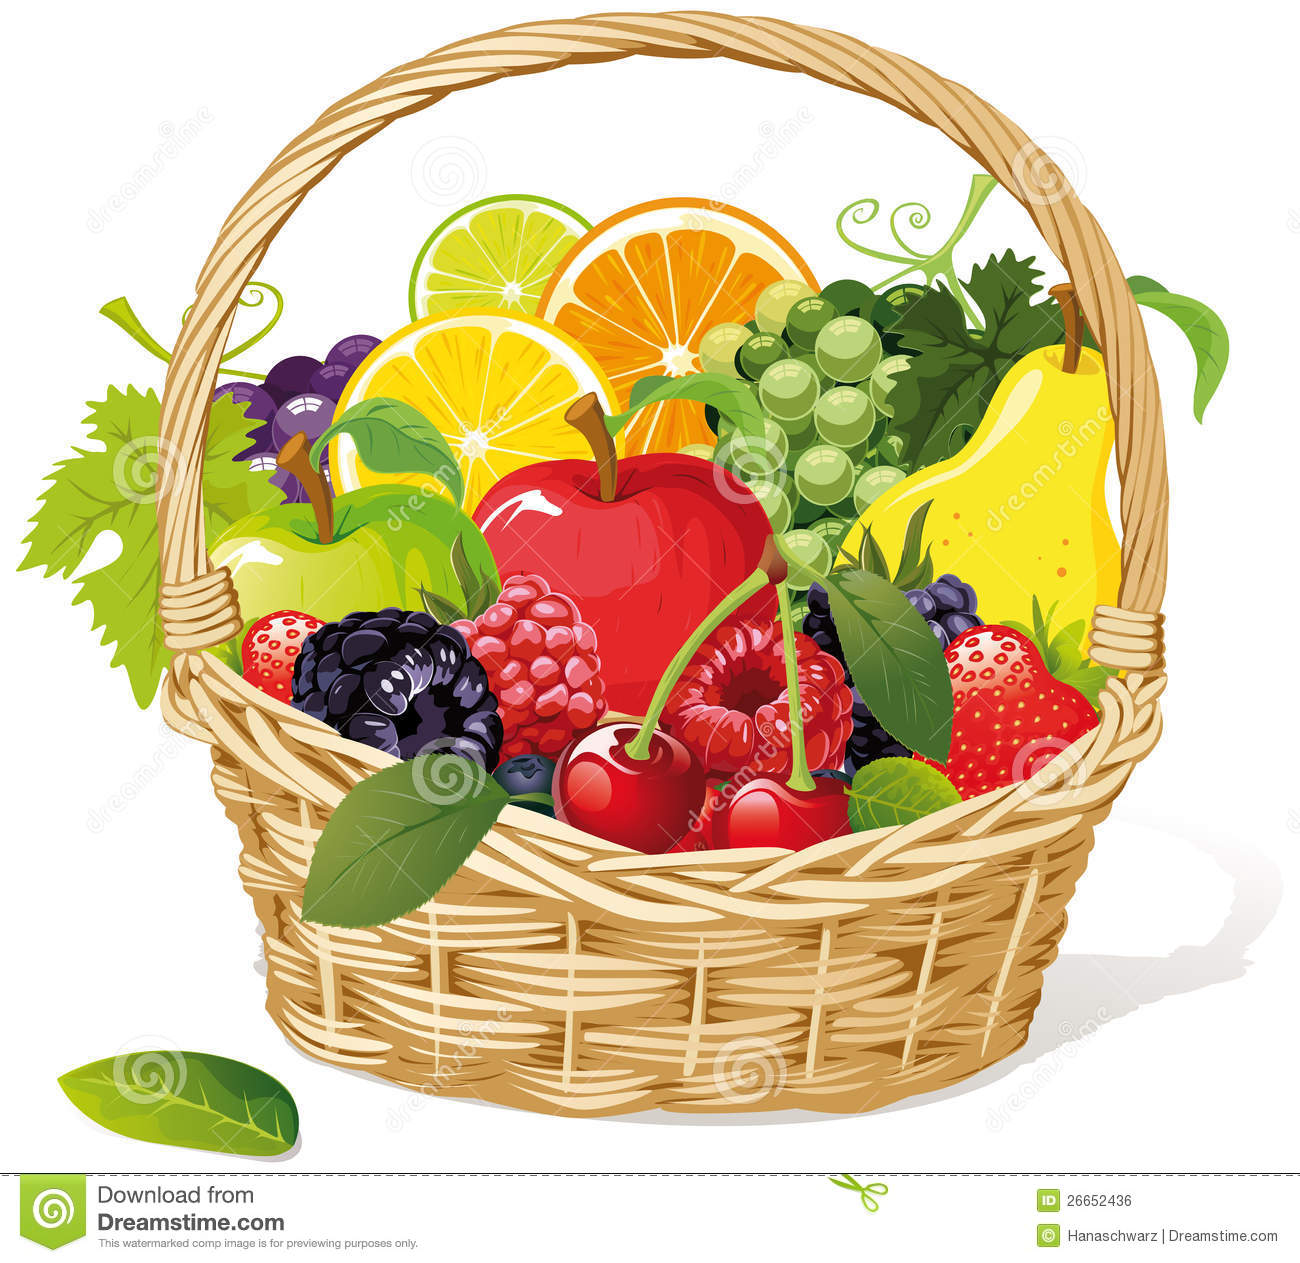 Healthy Foods Pictures To Color